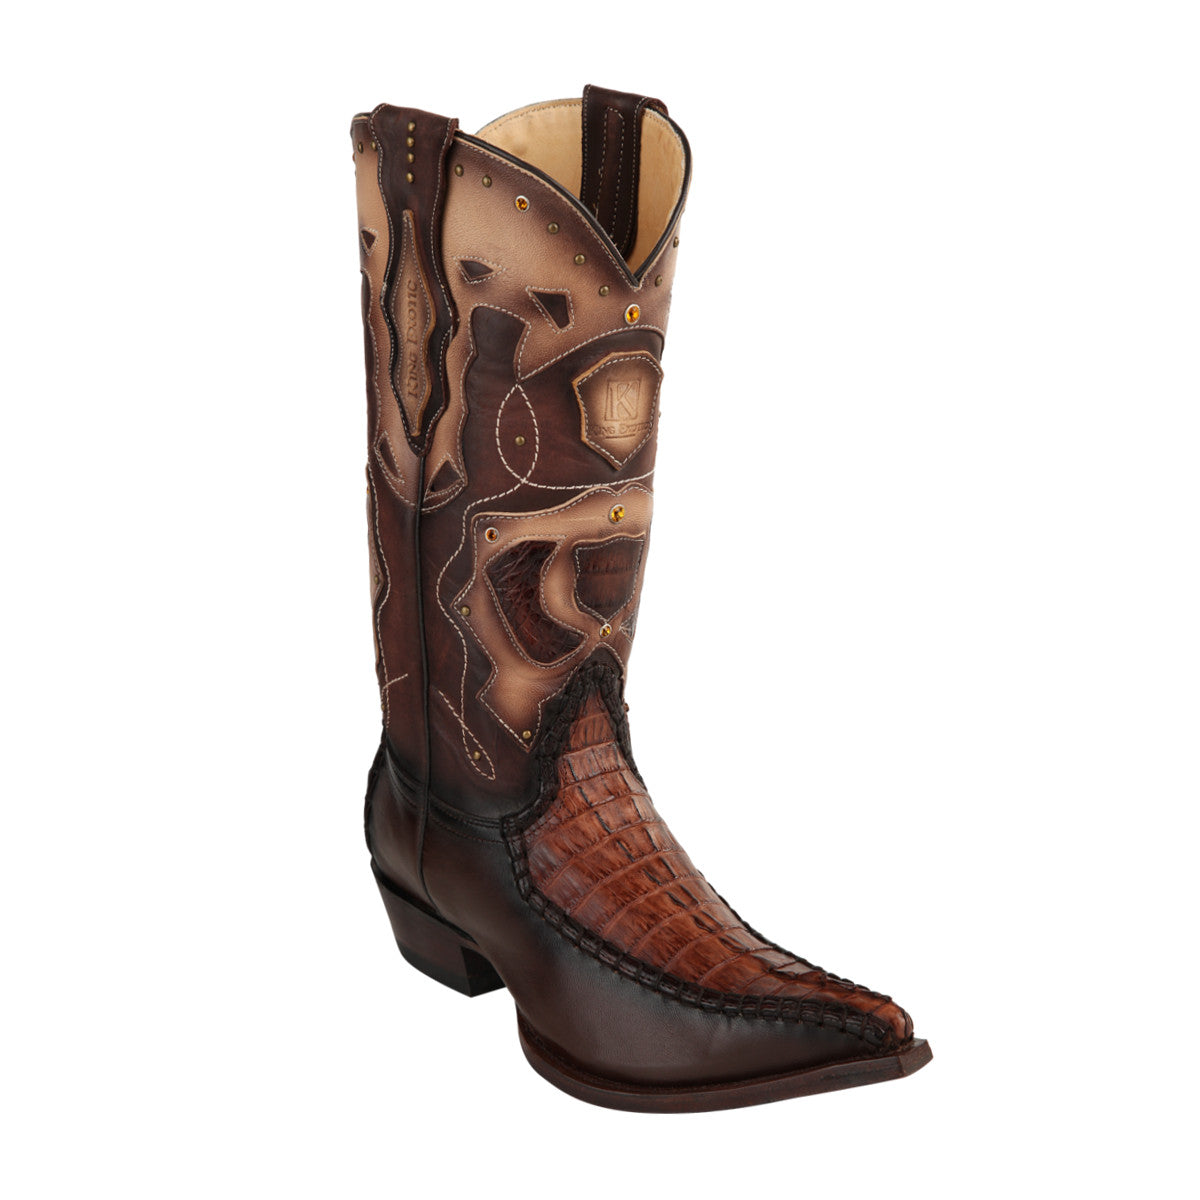 King Exotic H95 3x Toe Caiman Tail Stitched - Brown